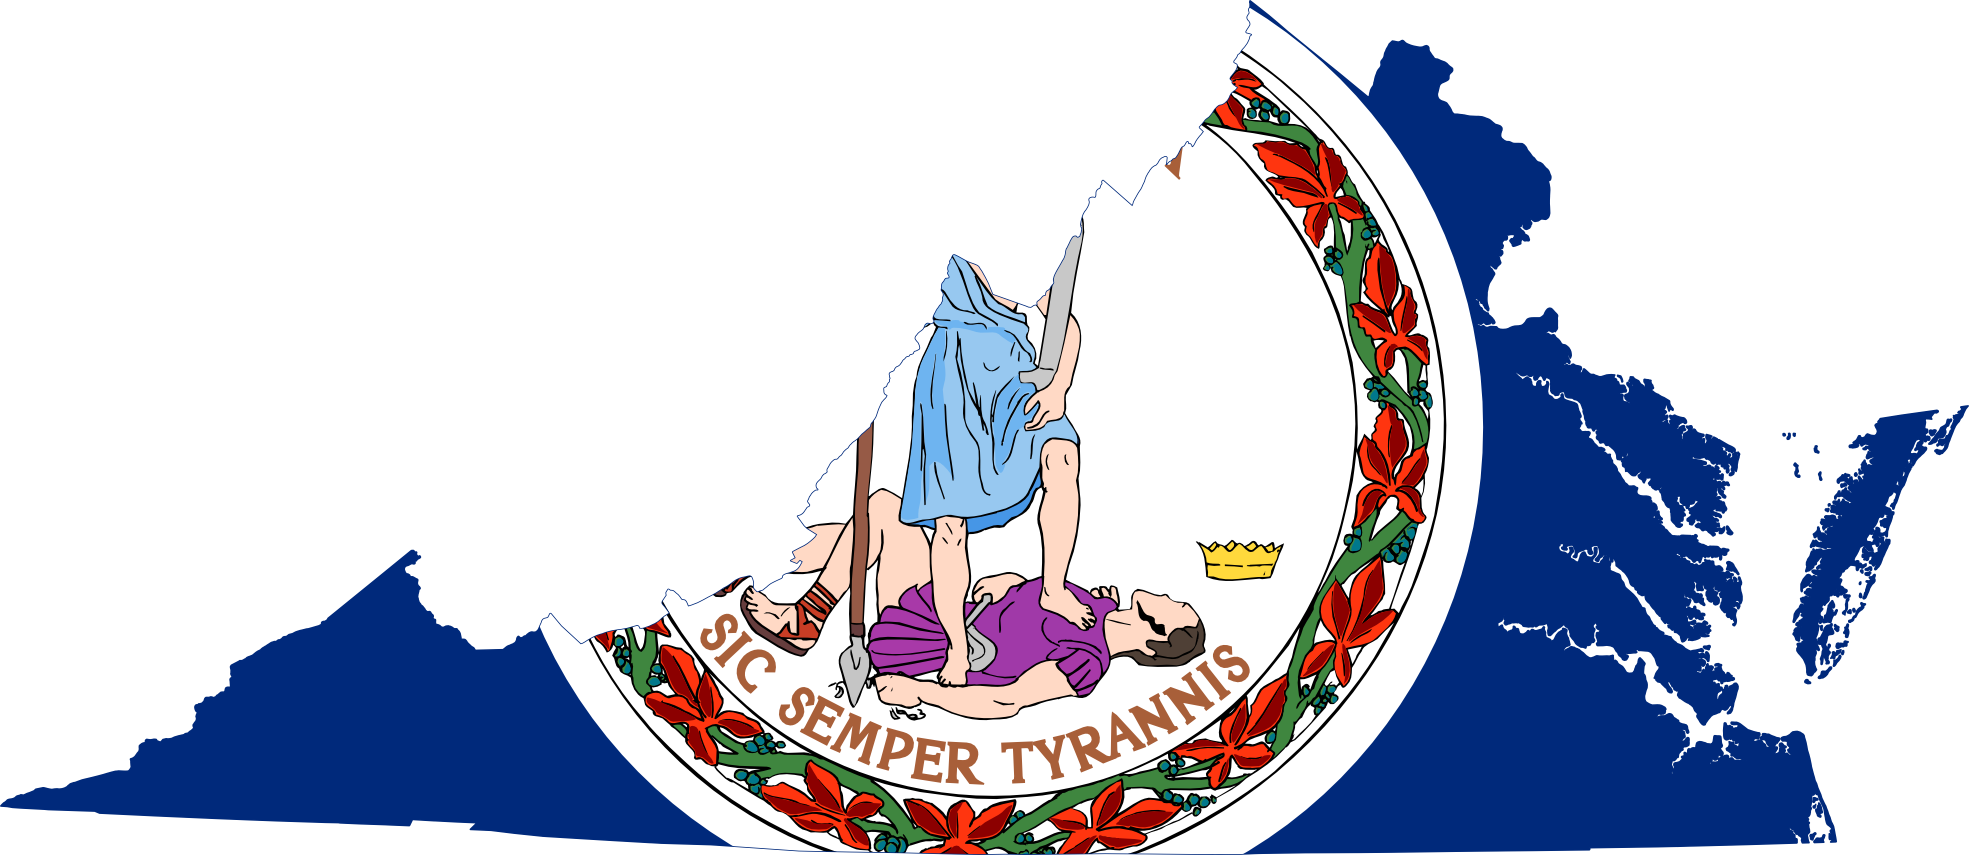 1969x855 Clipart Of Virginia State Outlines Cliparthut Free Lemonize